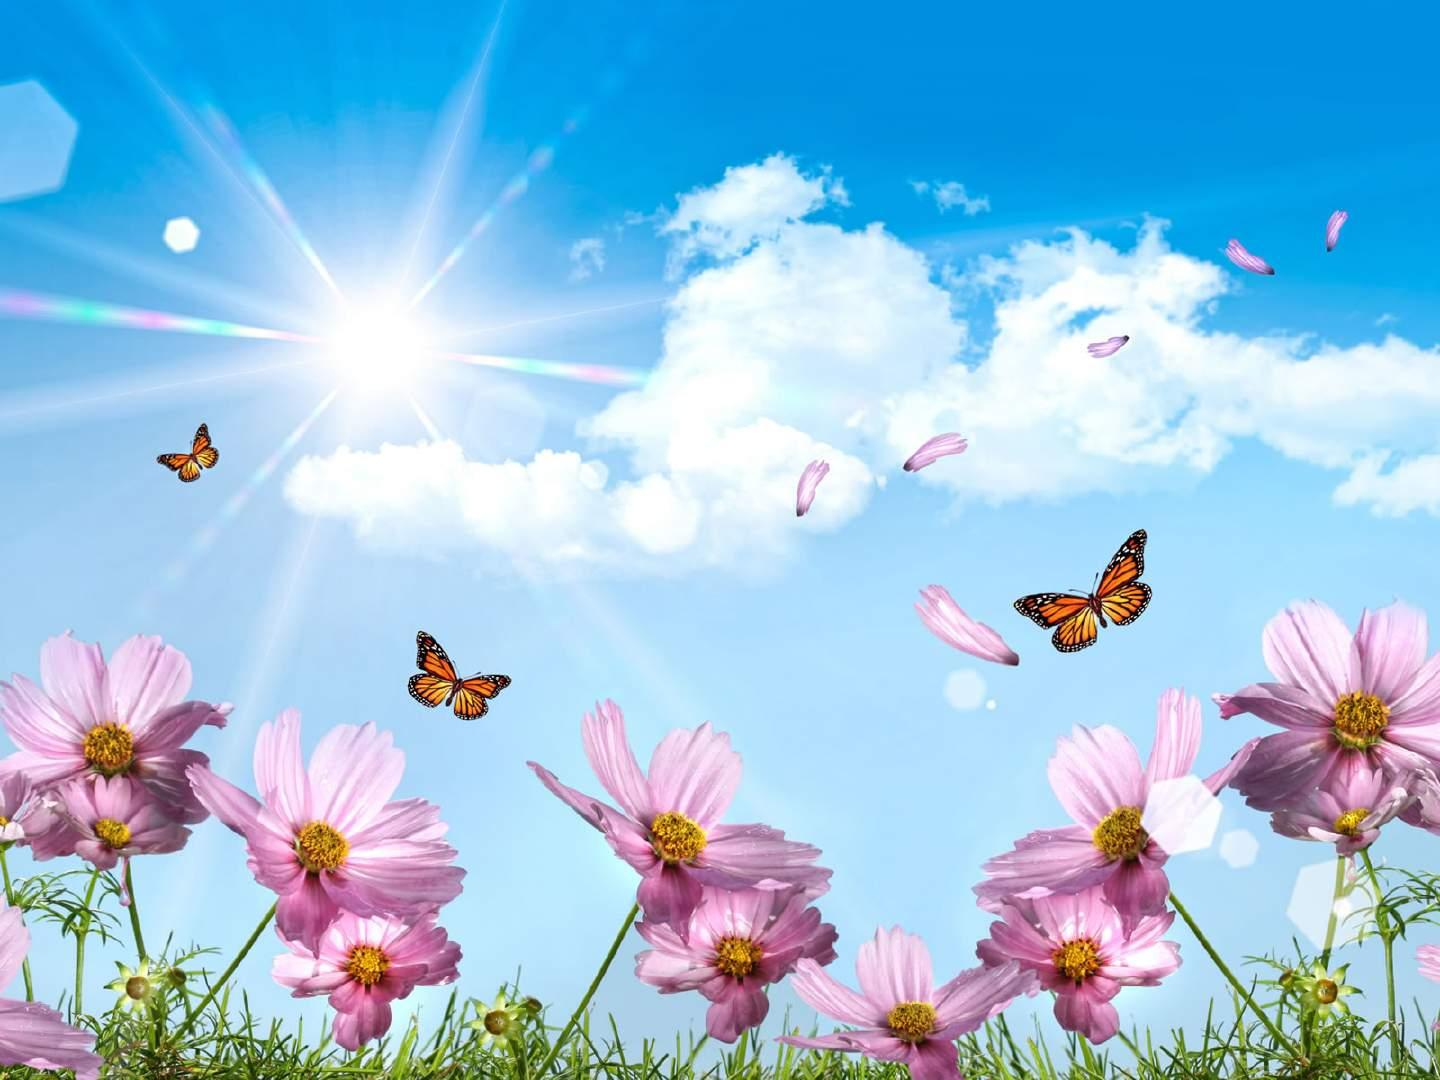 Summer desktop 3d wallpapers free wallpaper in free desktop backgrounds category: 3D-abstract-landscapes-wallpapers.